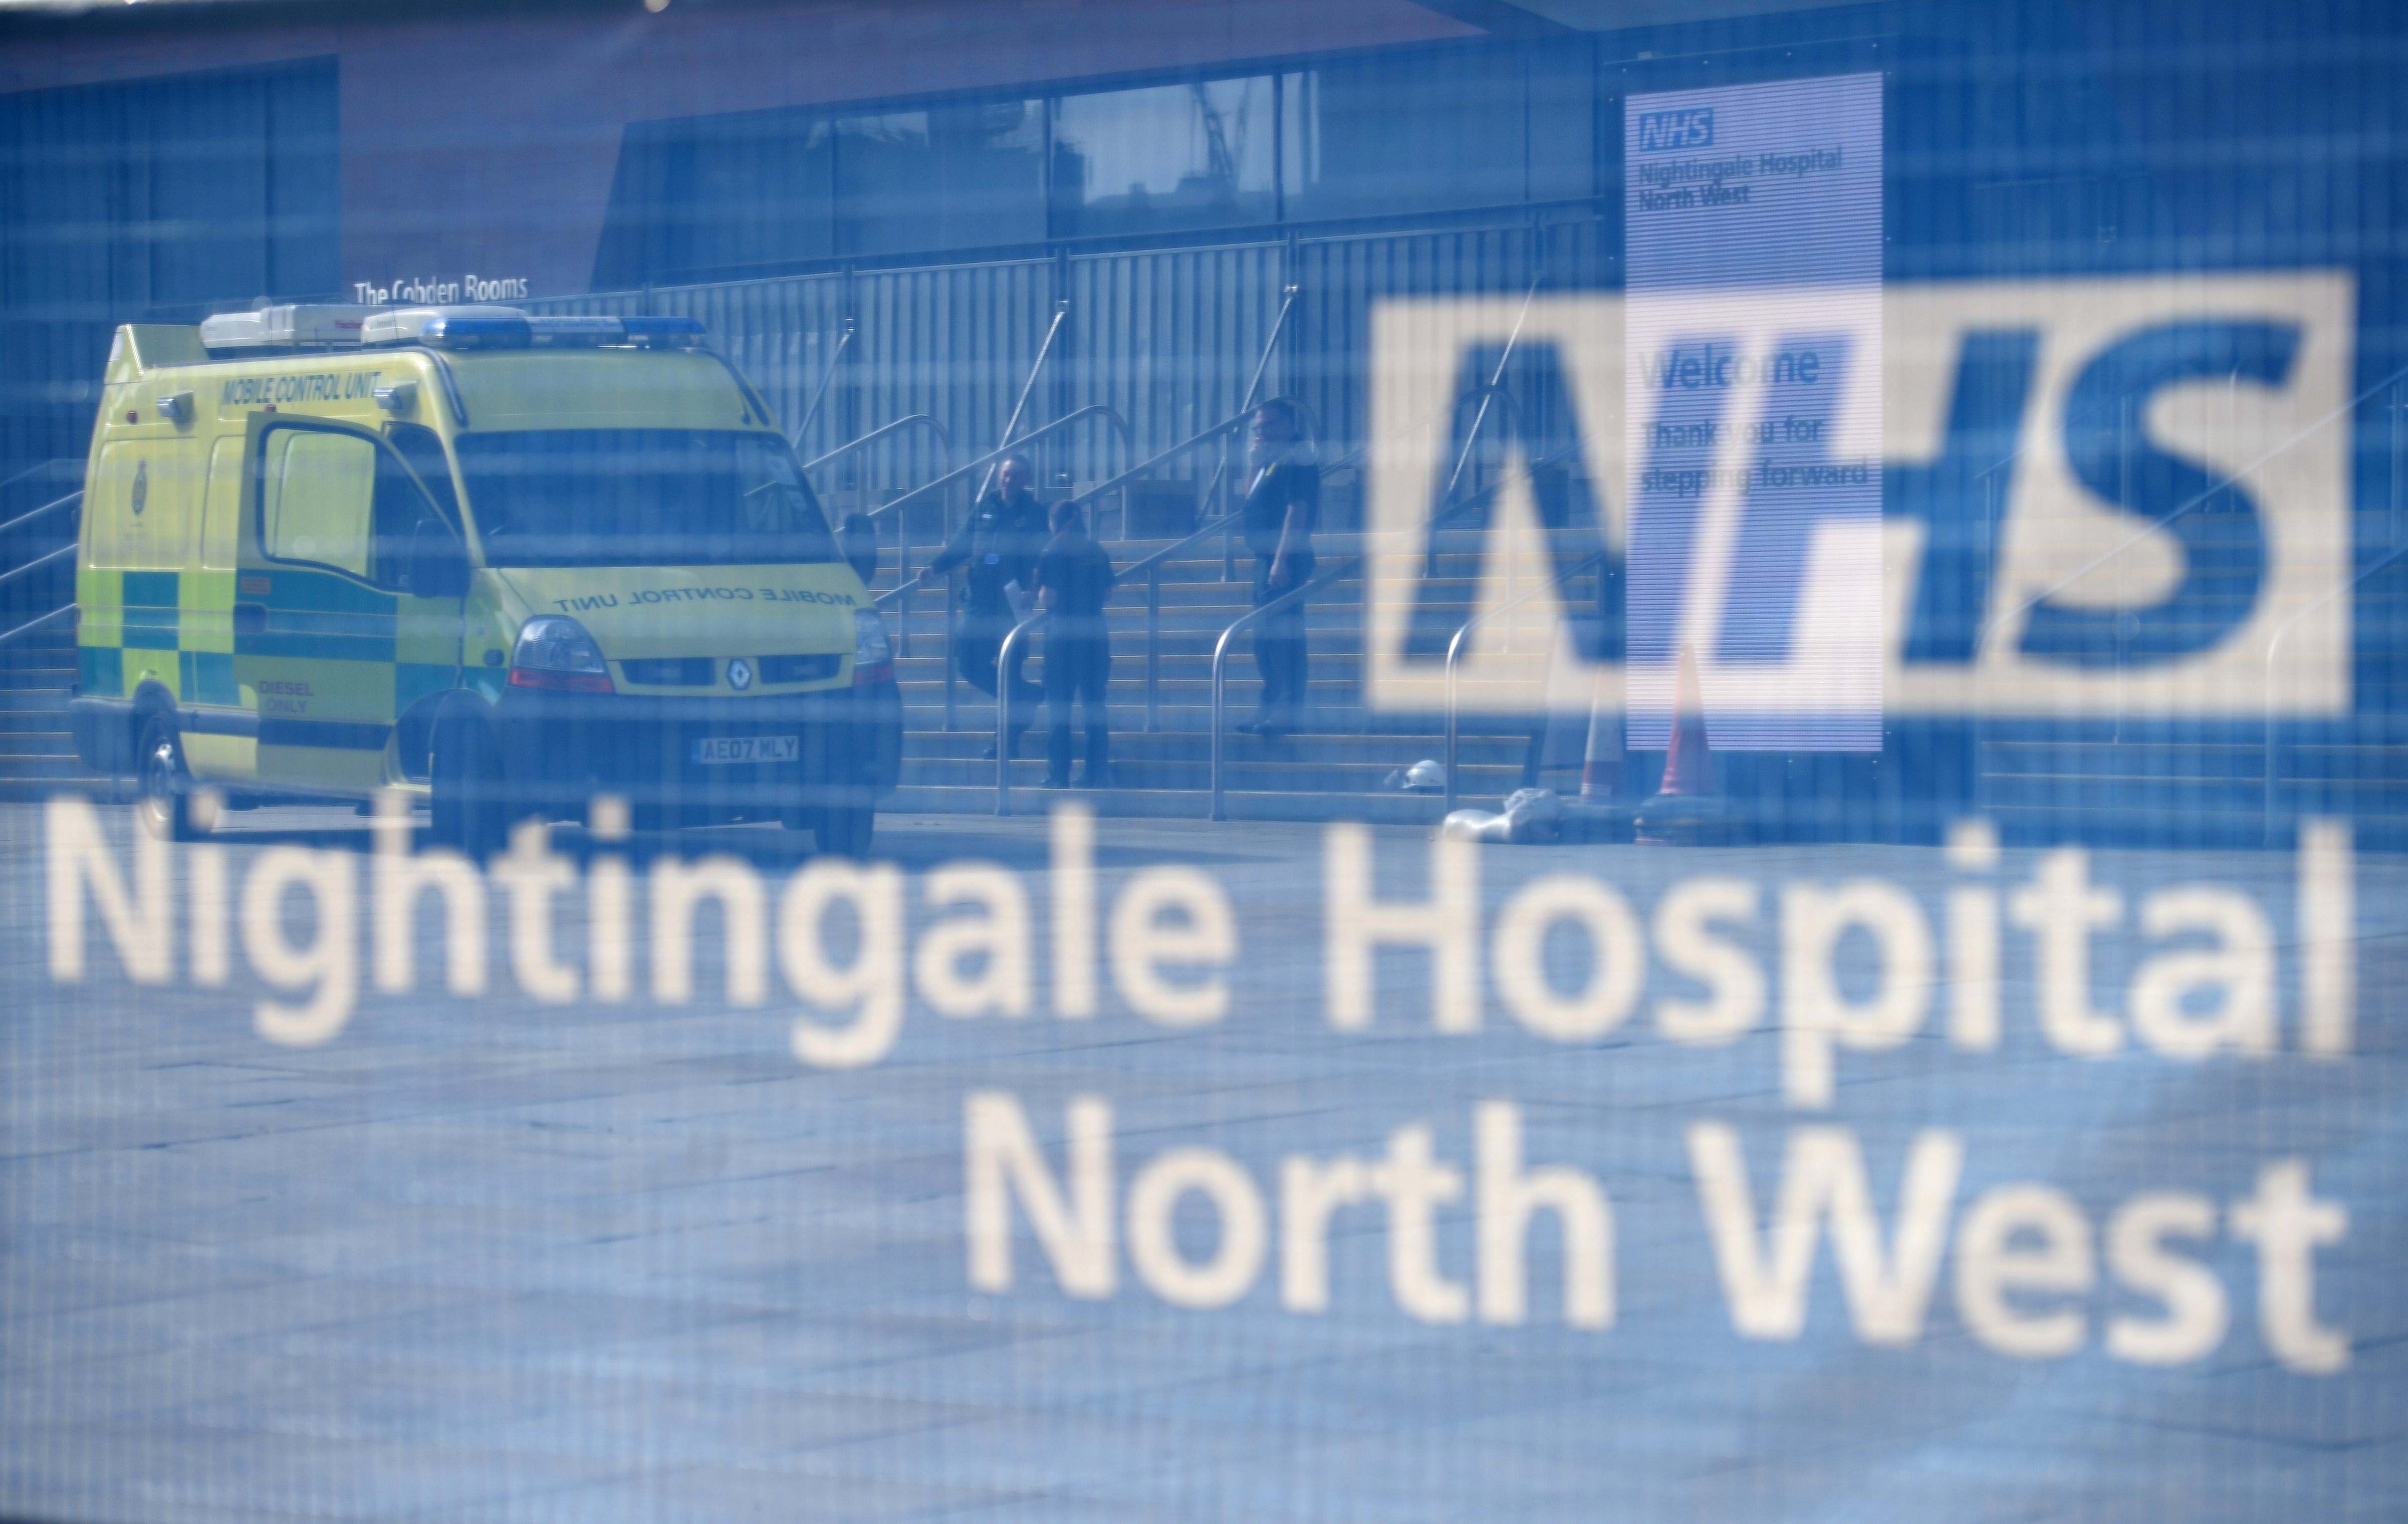 North West Ambulance Service medical staff stand outside Nightingale Hospital North West in Manchester, England, on April 13.